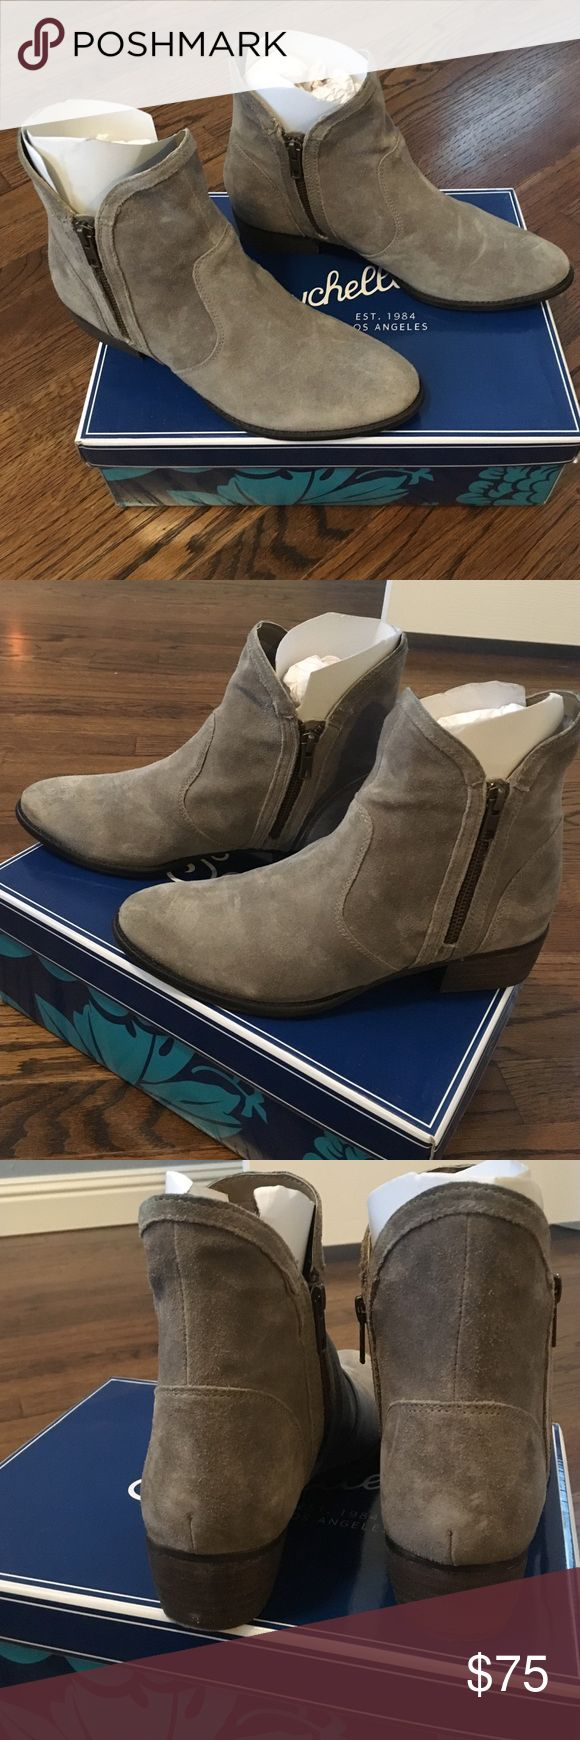 Seychelles Boots Full Speed Seychelles booties. Taupe. Size 8. Hardly worn due to size. Perfect condition with no marks. Seychelles Shoes Ankle Boots & Booties